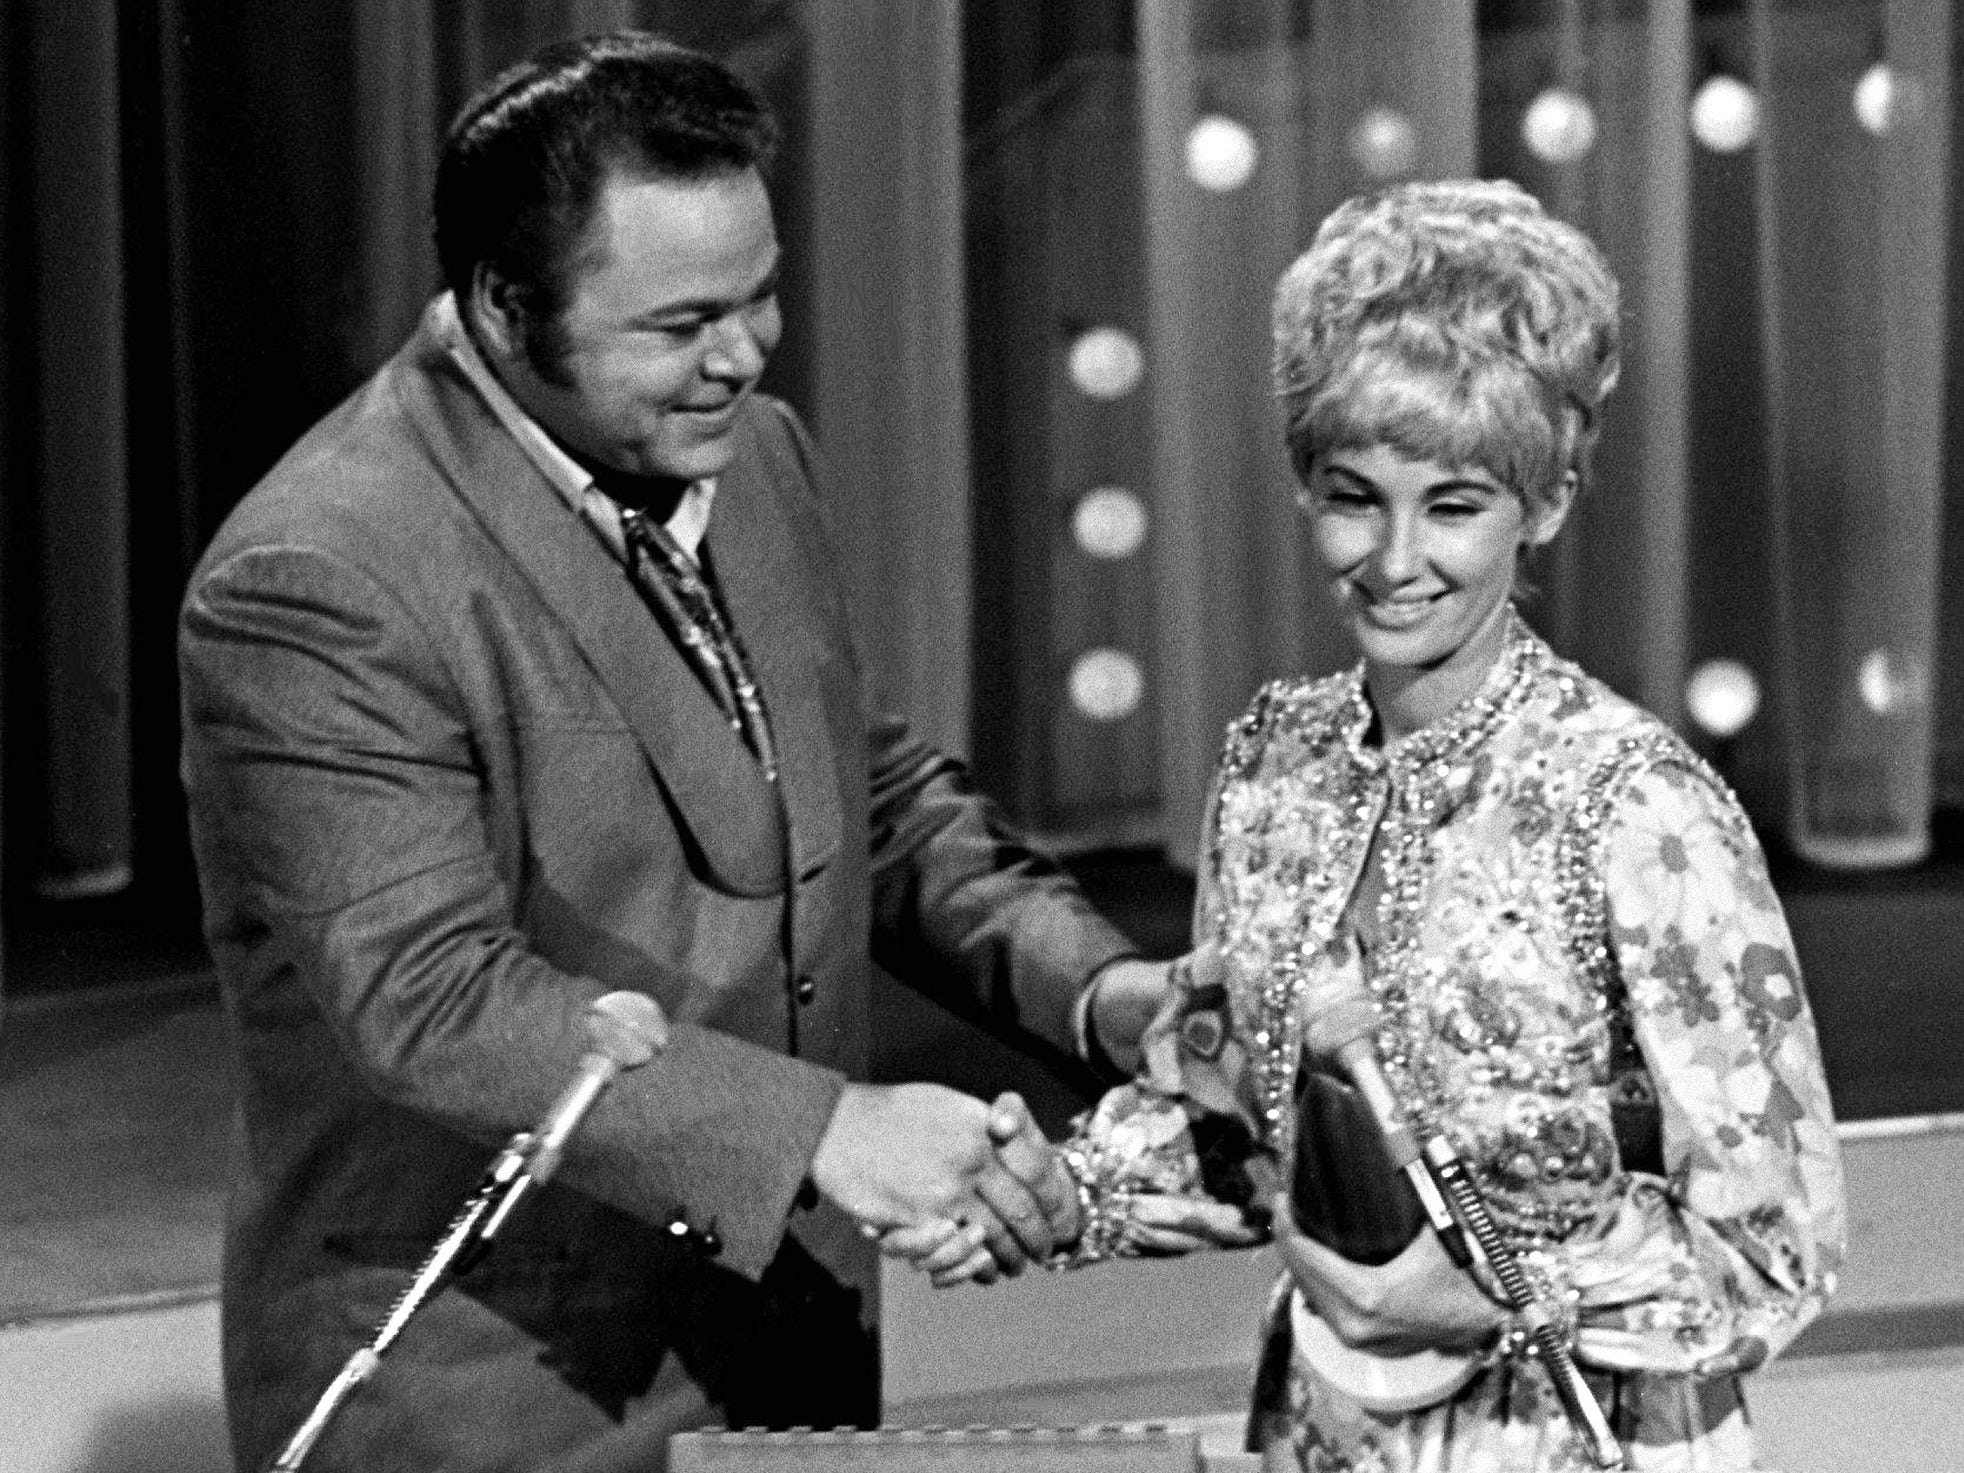 Tammy Wynette receives the Female Vocalist of the Year award from presenter Roy Clark during the CMA Awards show at the Ryman Auditorium on Oct. 15, 1969.